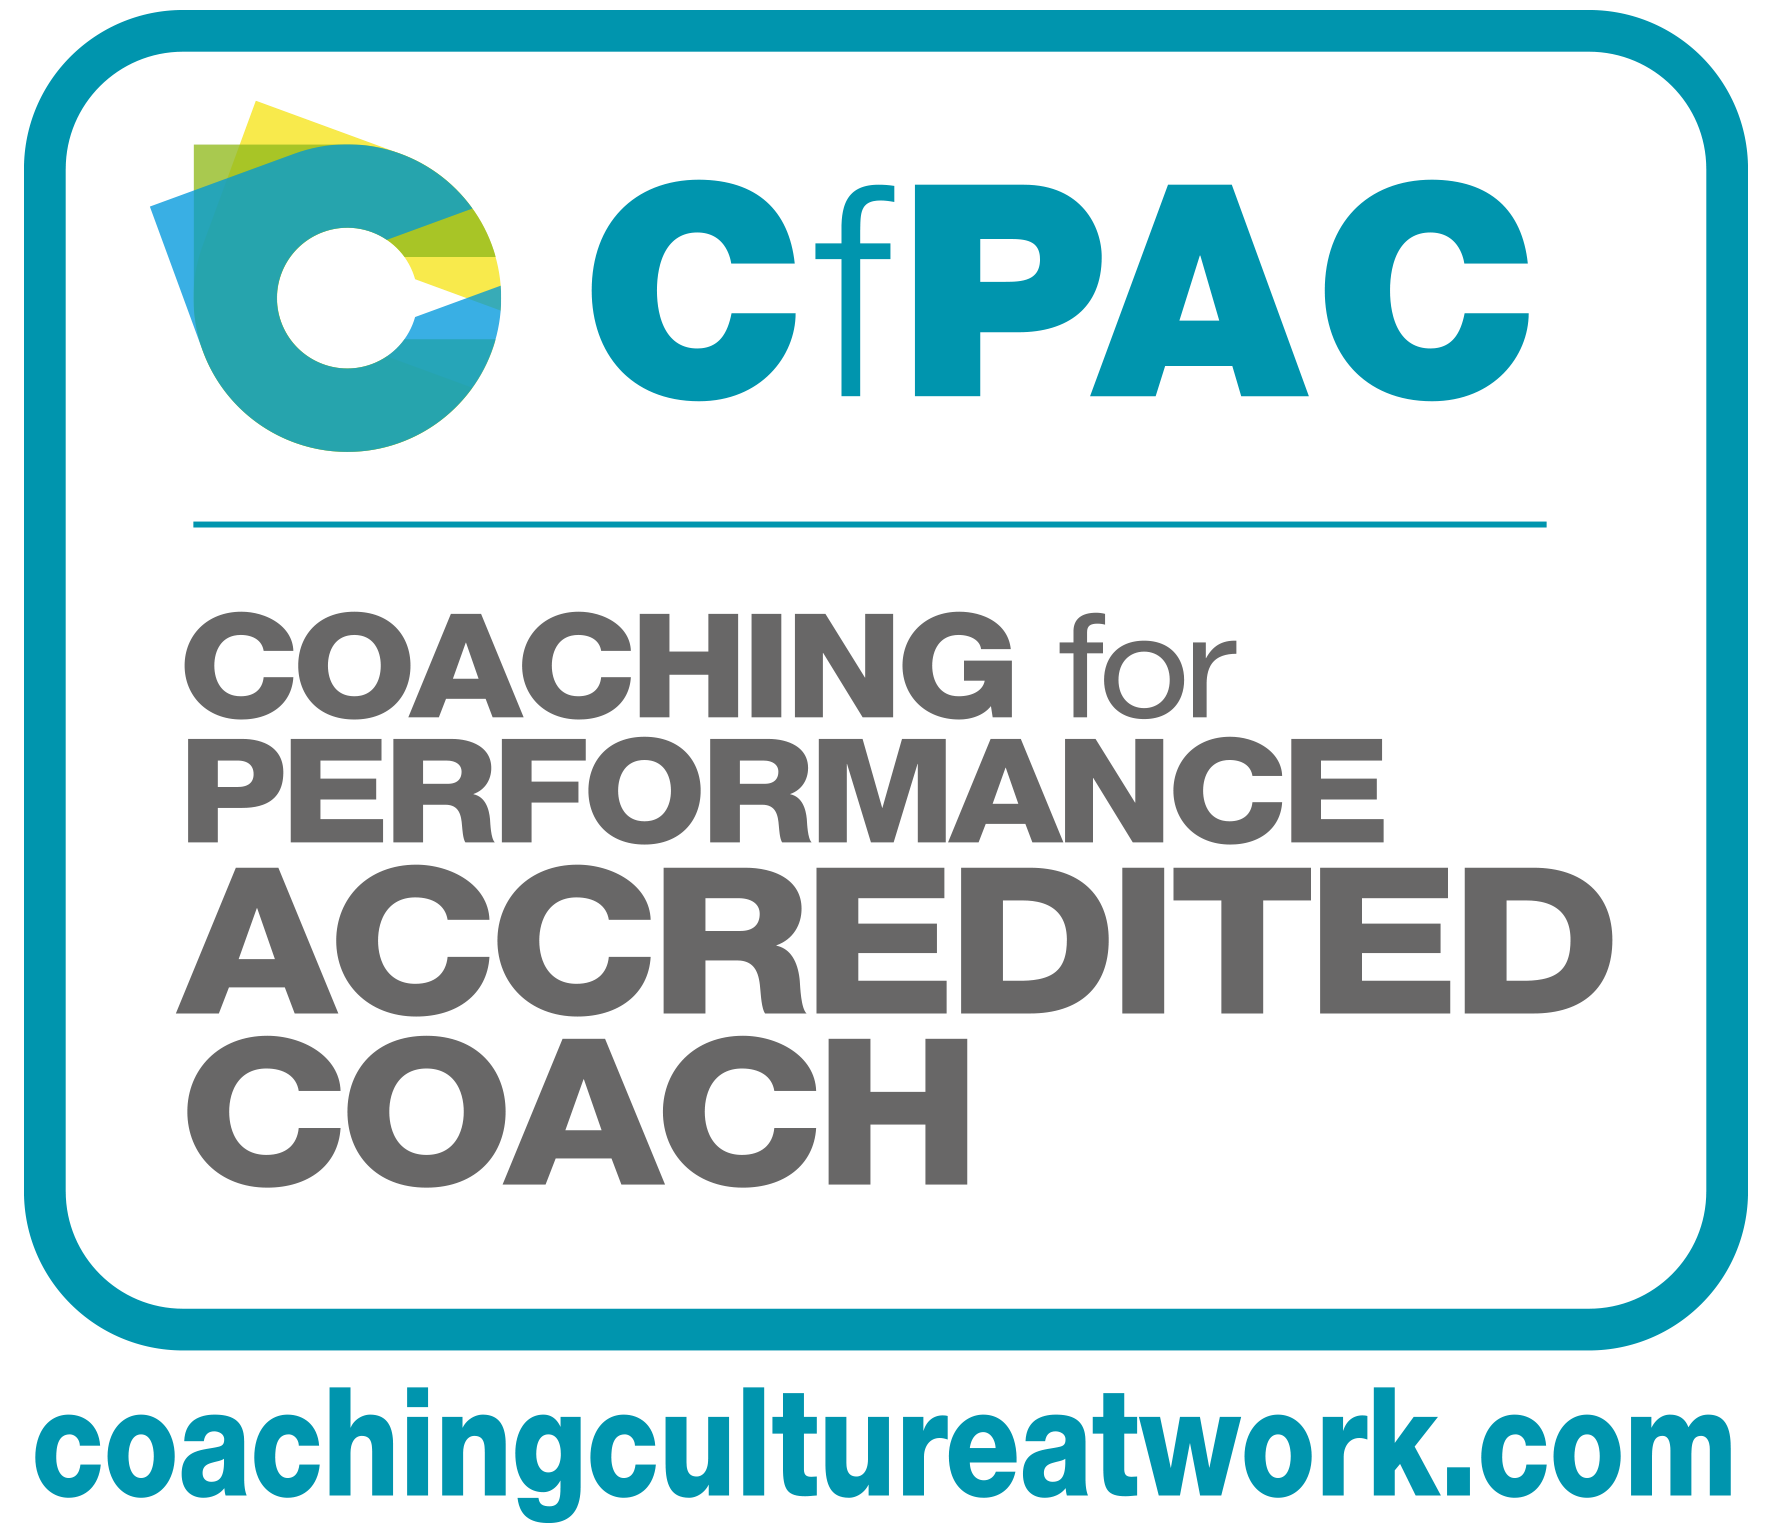 Accredited coach training